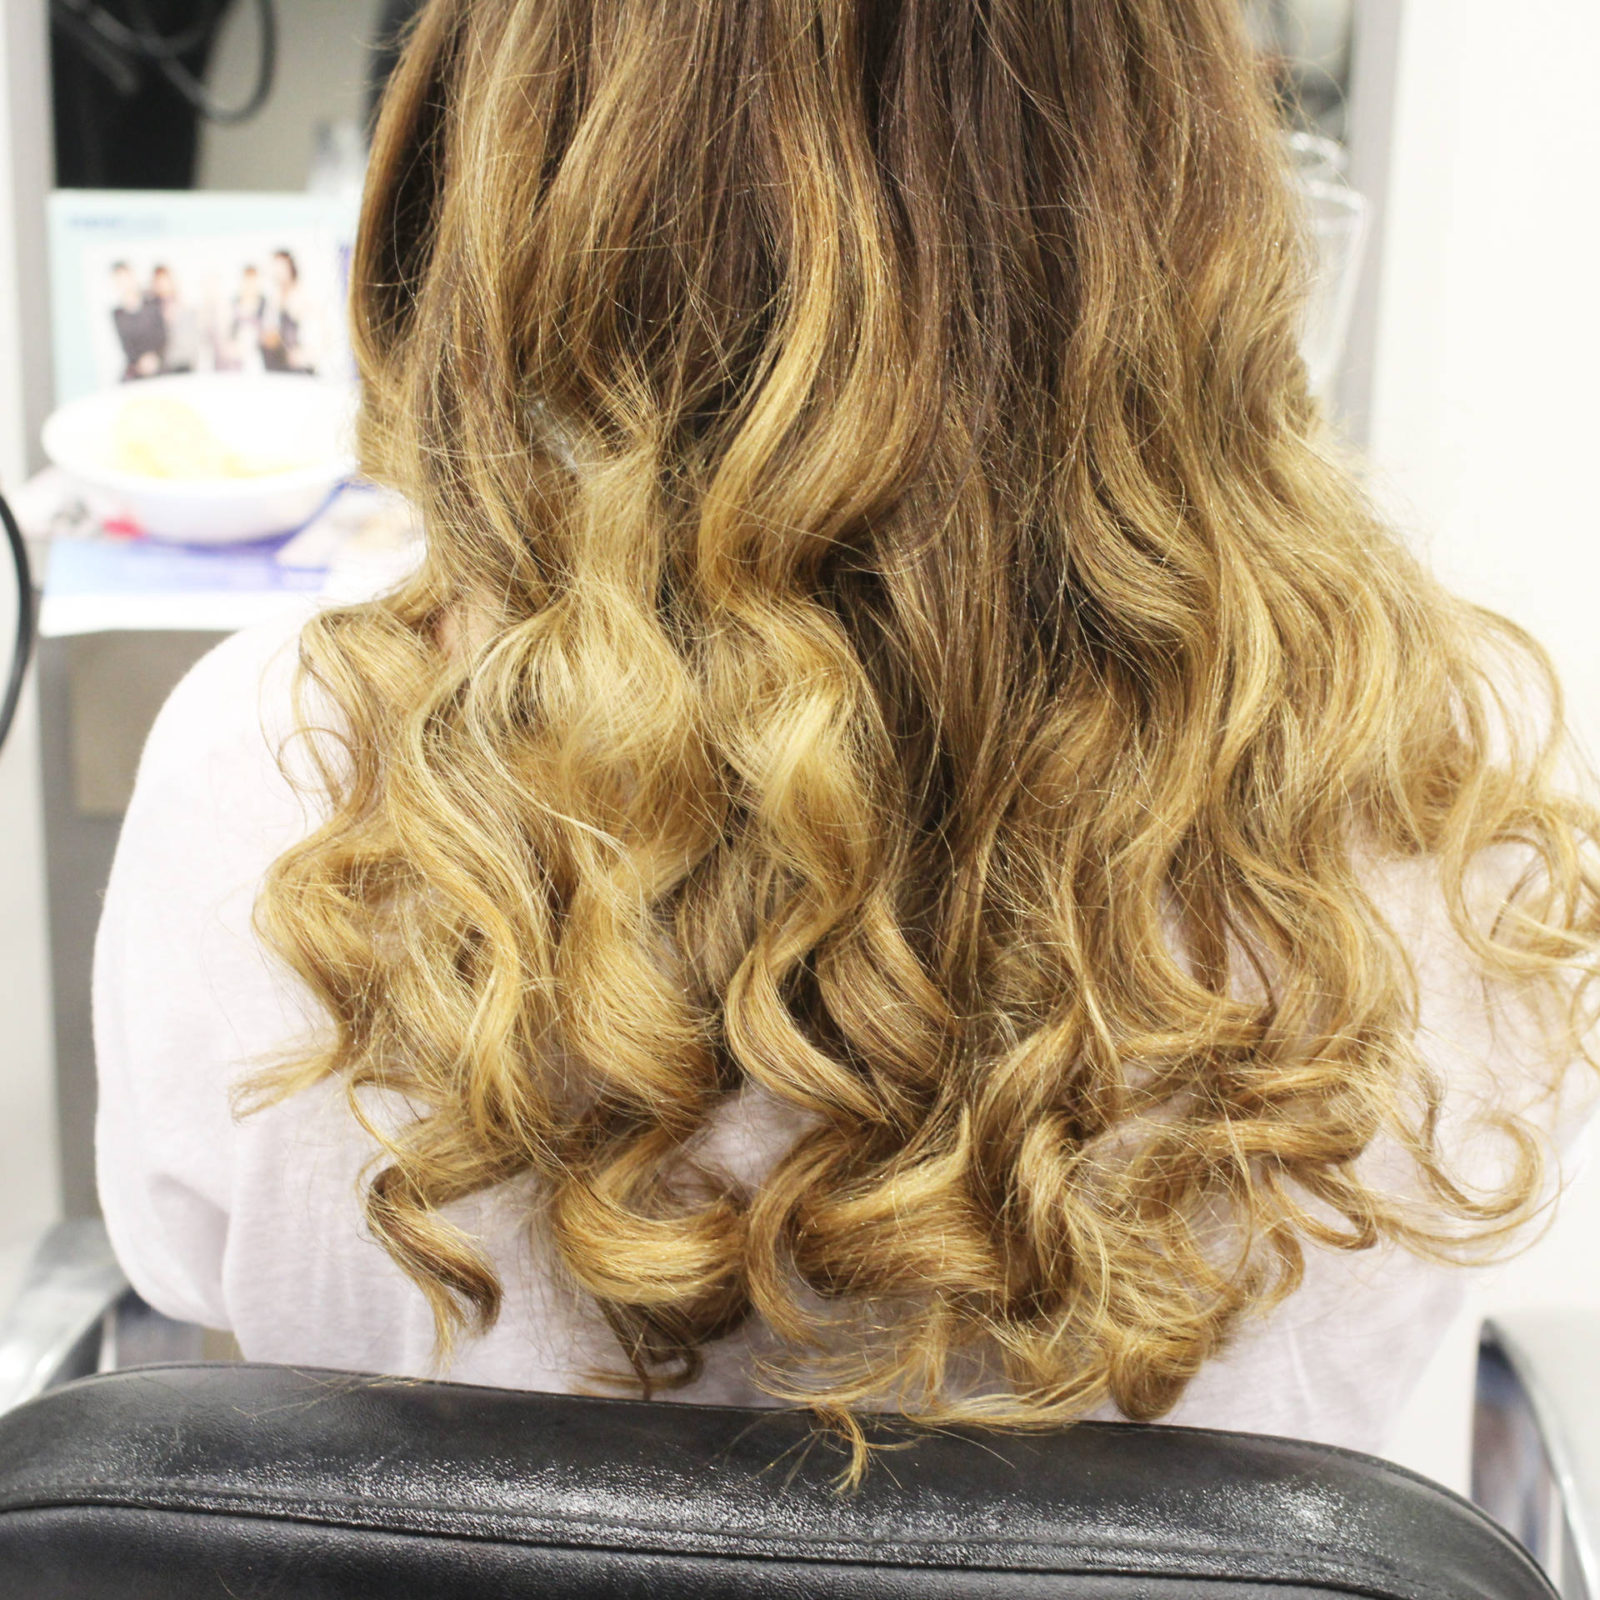 Supercuts Hair balayage